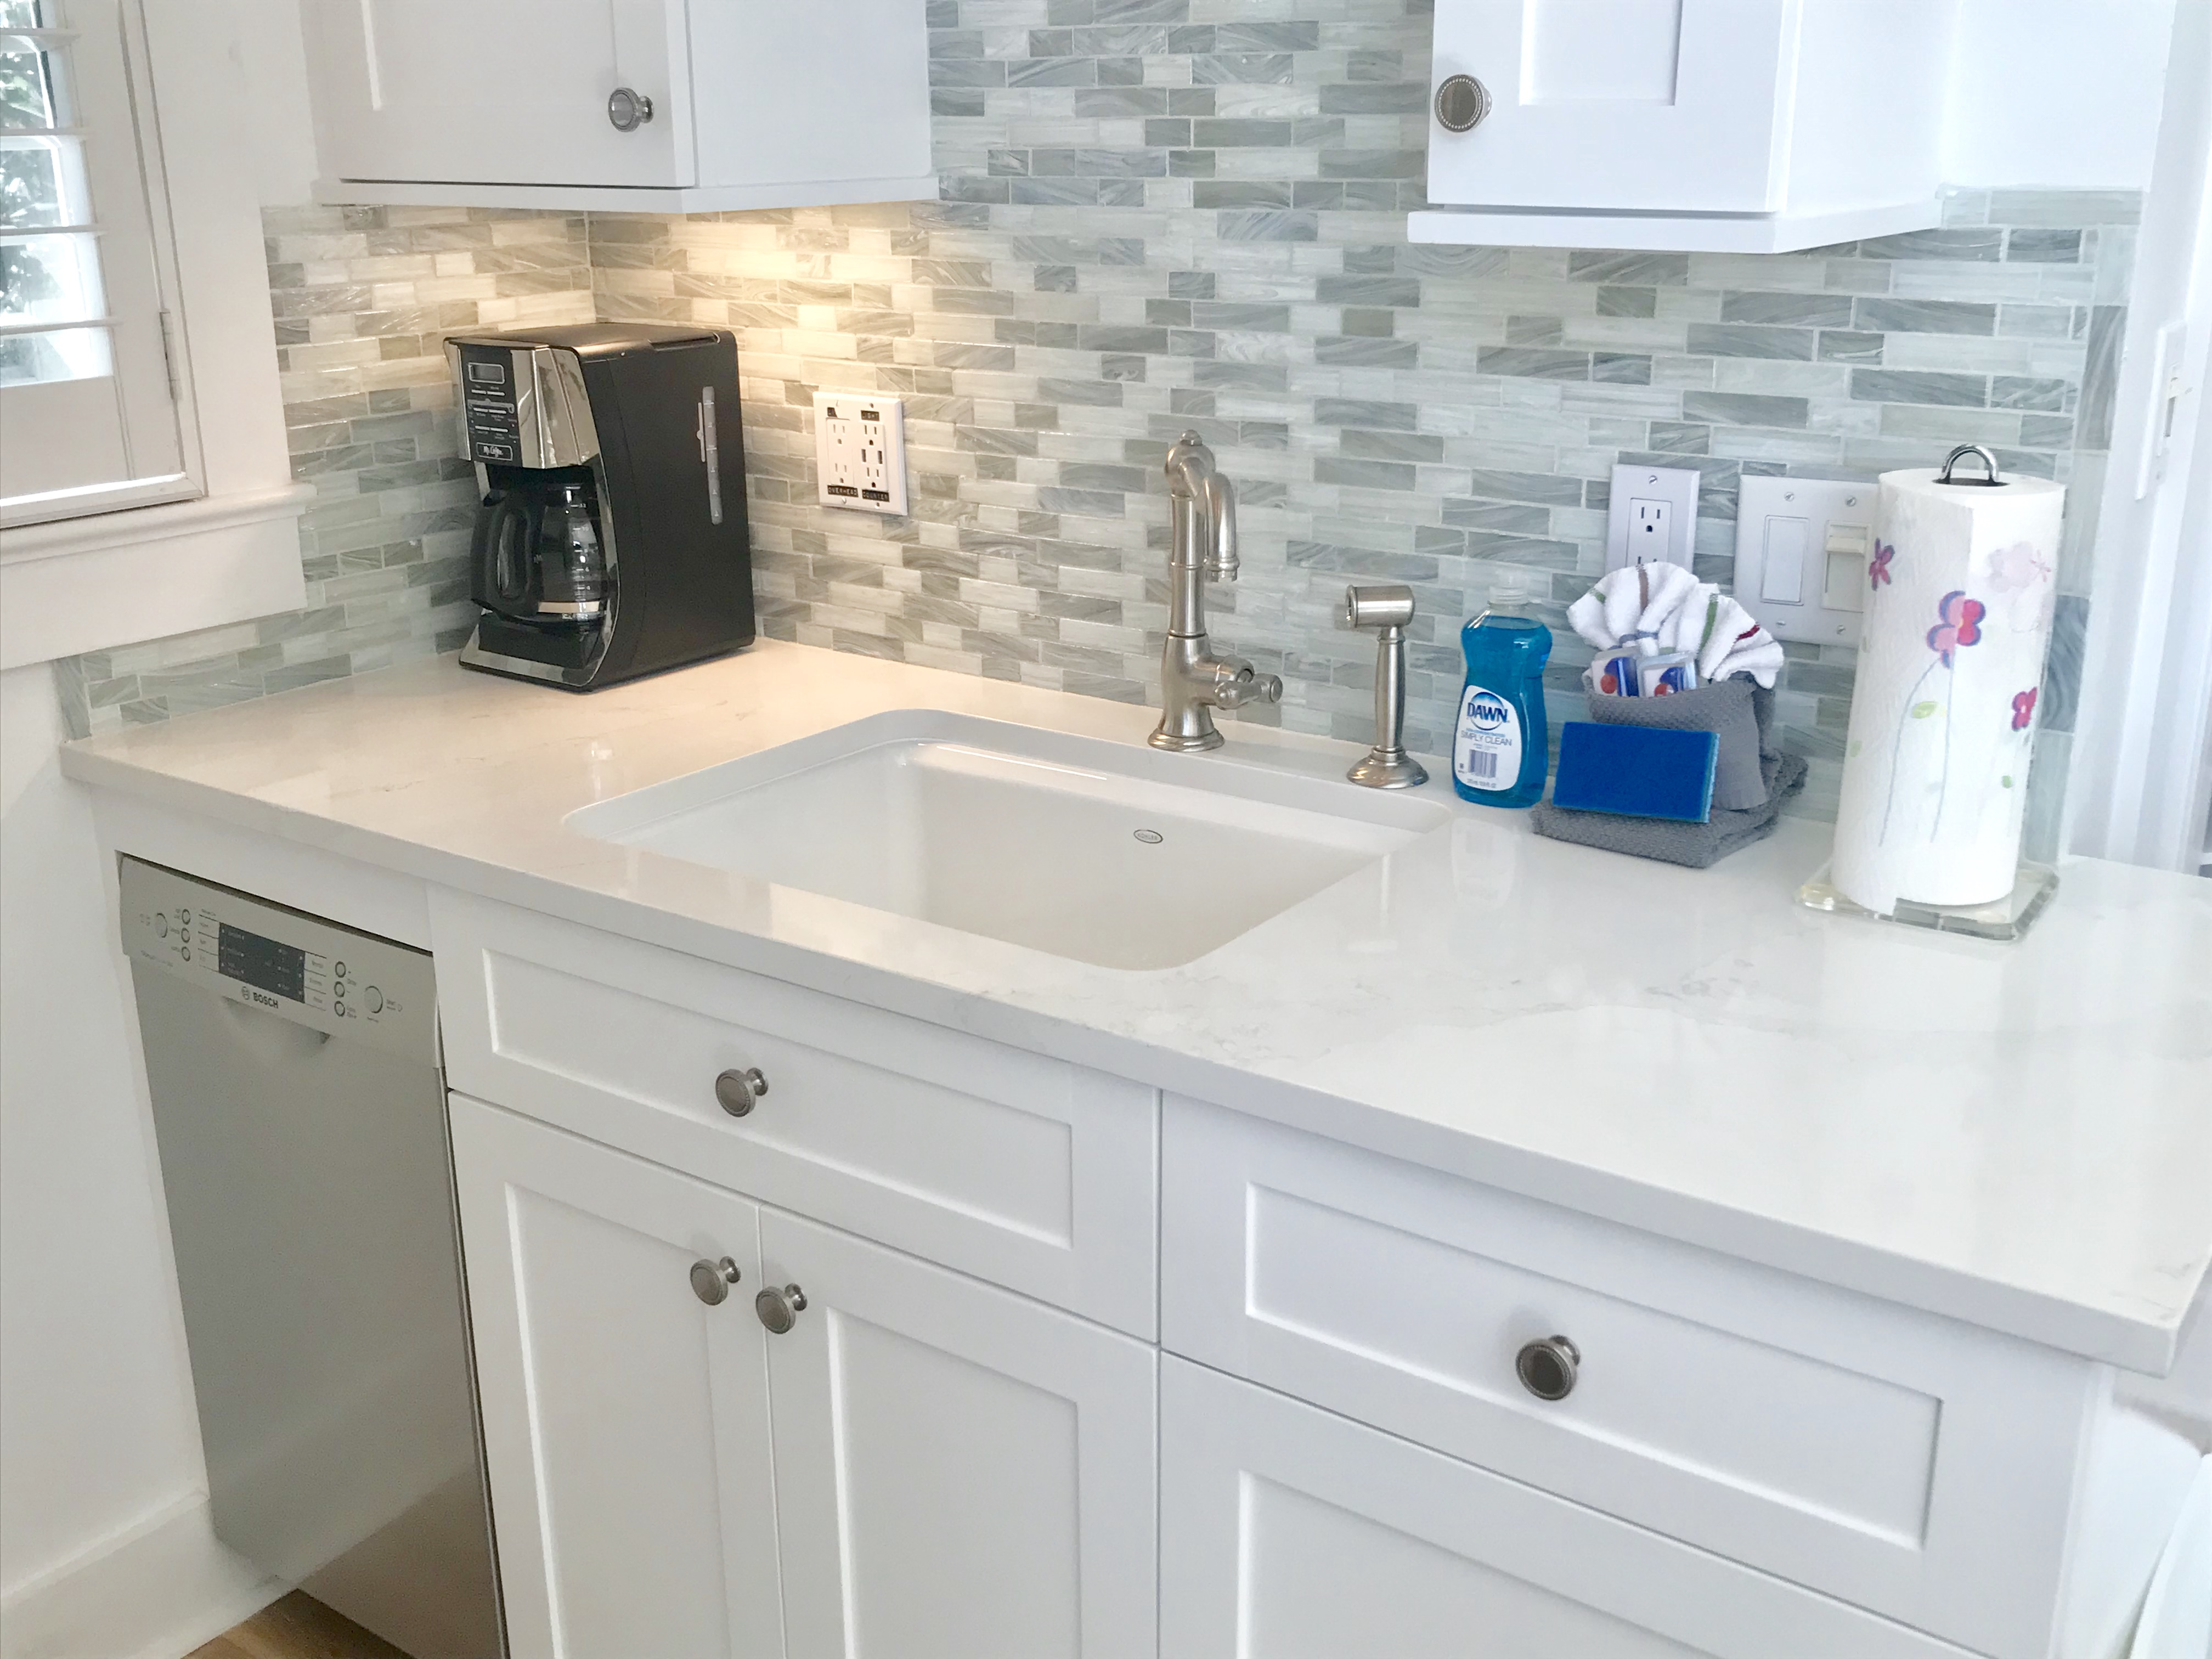 Gorgeous counters a modern backsplash highlight the updates in the kitchen